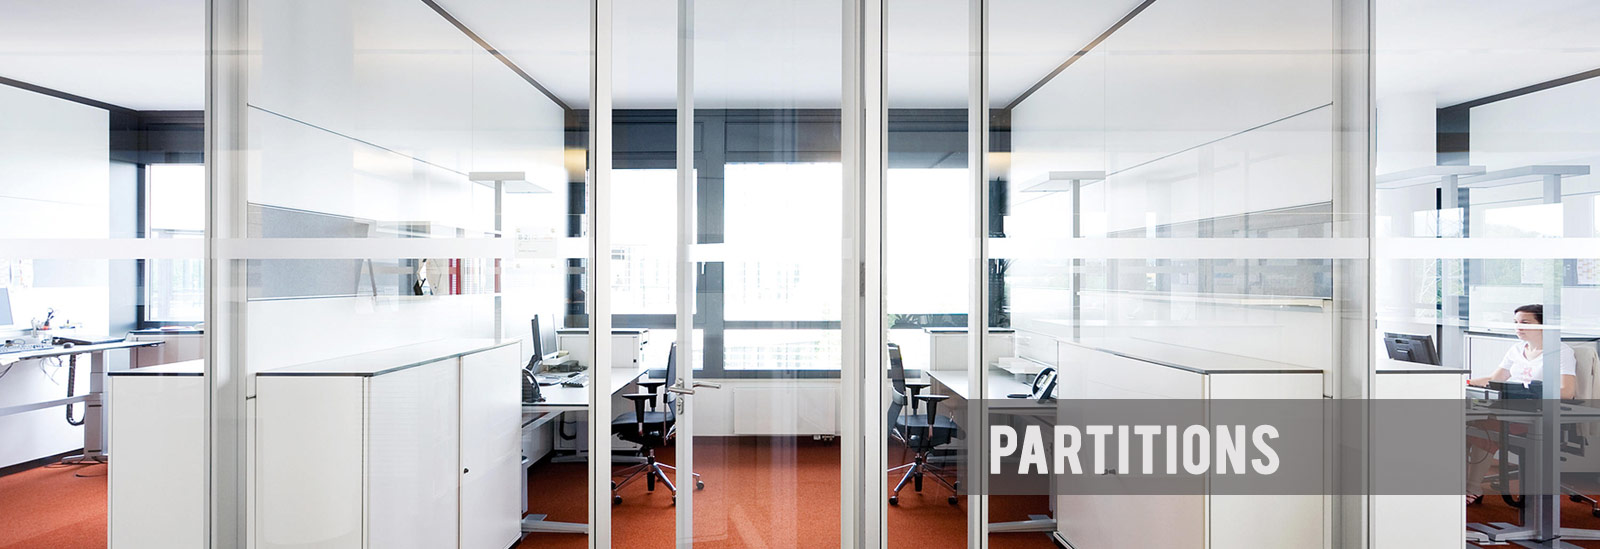 Partitions-banner